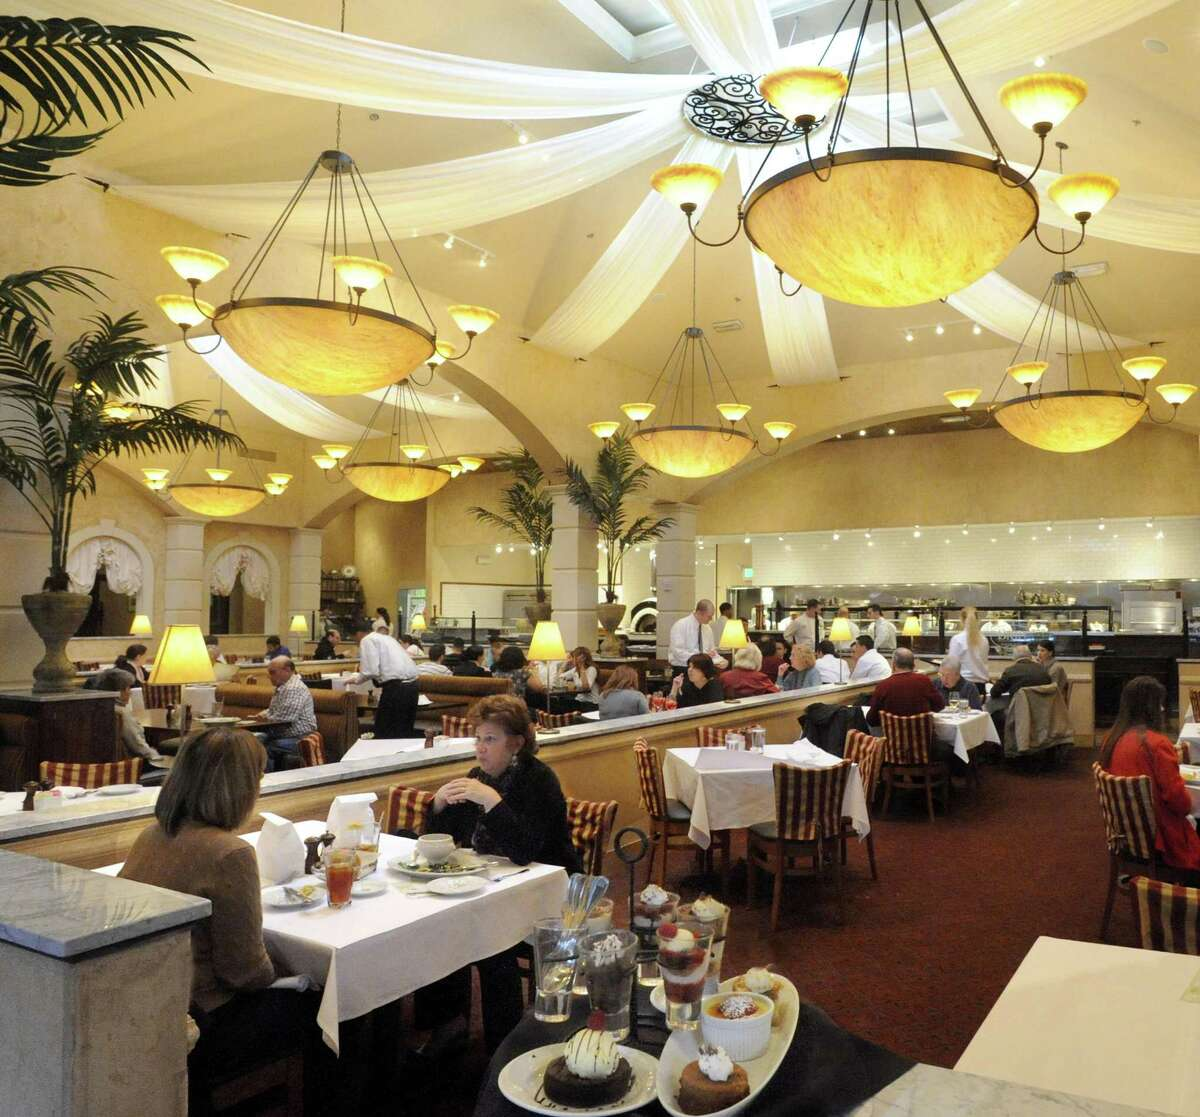 A file photo of Brio Tuscan Grille at Danbury Fair mall. Barbarie Grill is opening at the mall in November 2020, the third Danbury venue to bear the name after Jim Barbarie's Restaurant and Barbarie's Black Angus Steakhouse.